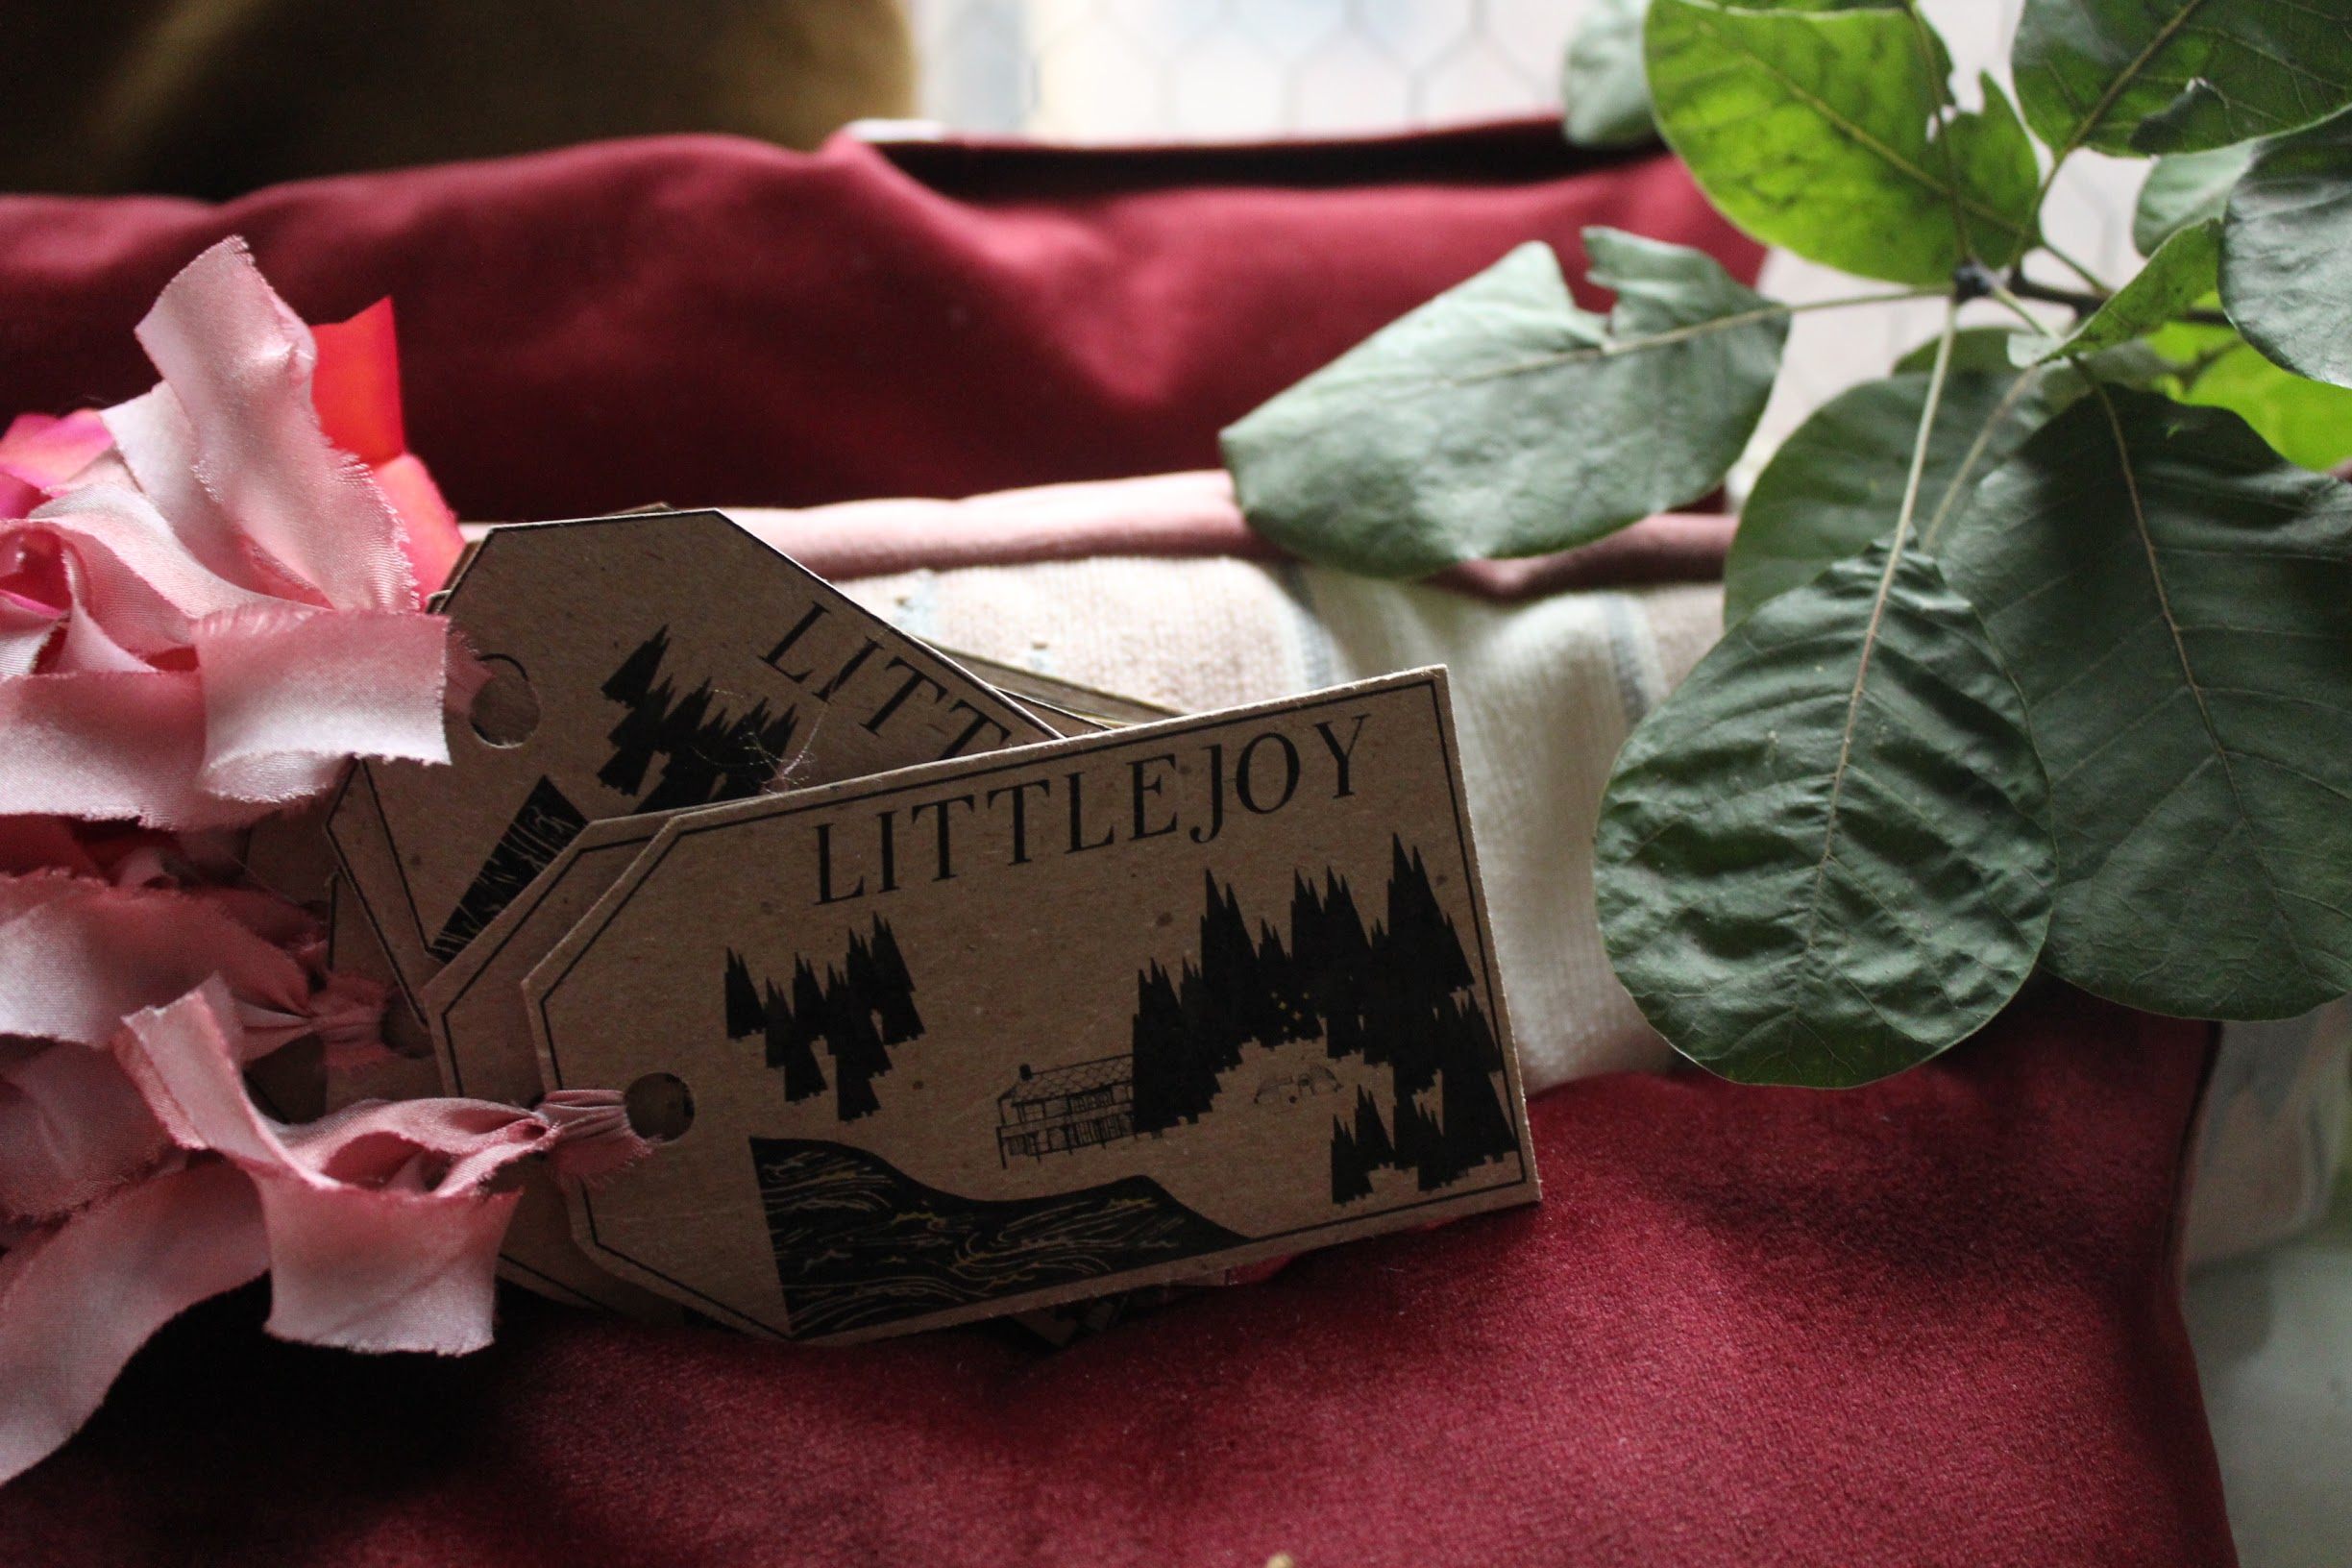 Little Joy NYC - Digital design & paper goods